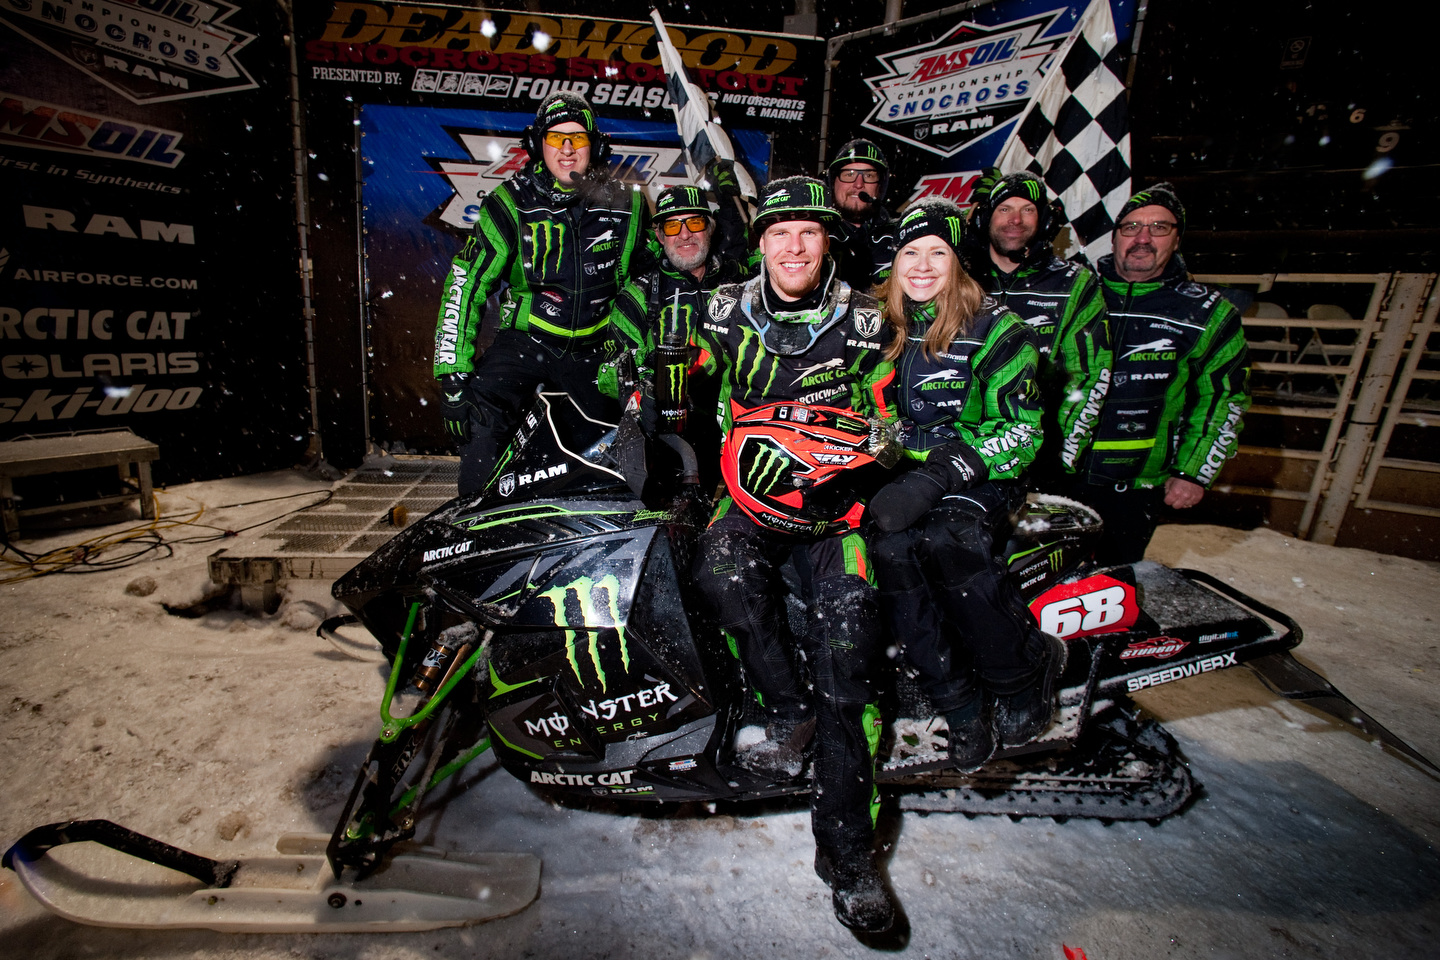 Tucker Hibbert rides to heroic 100th Pro National Snocross victory